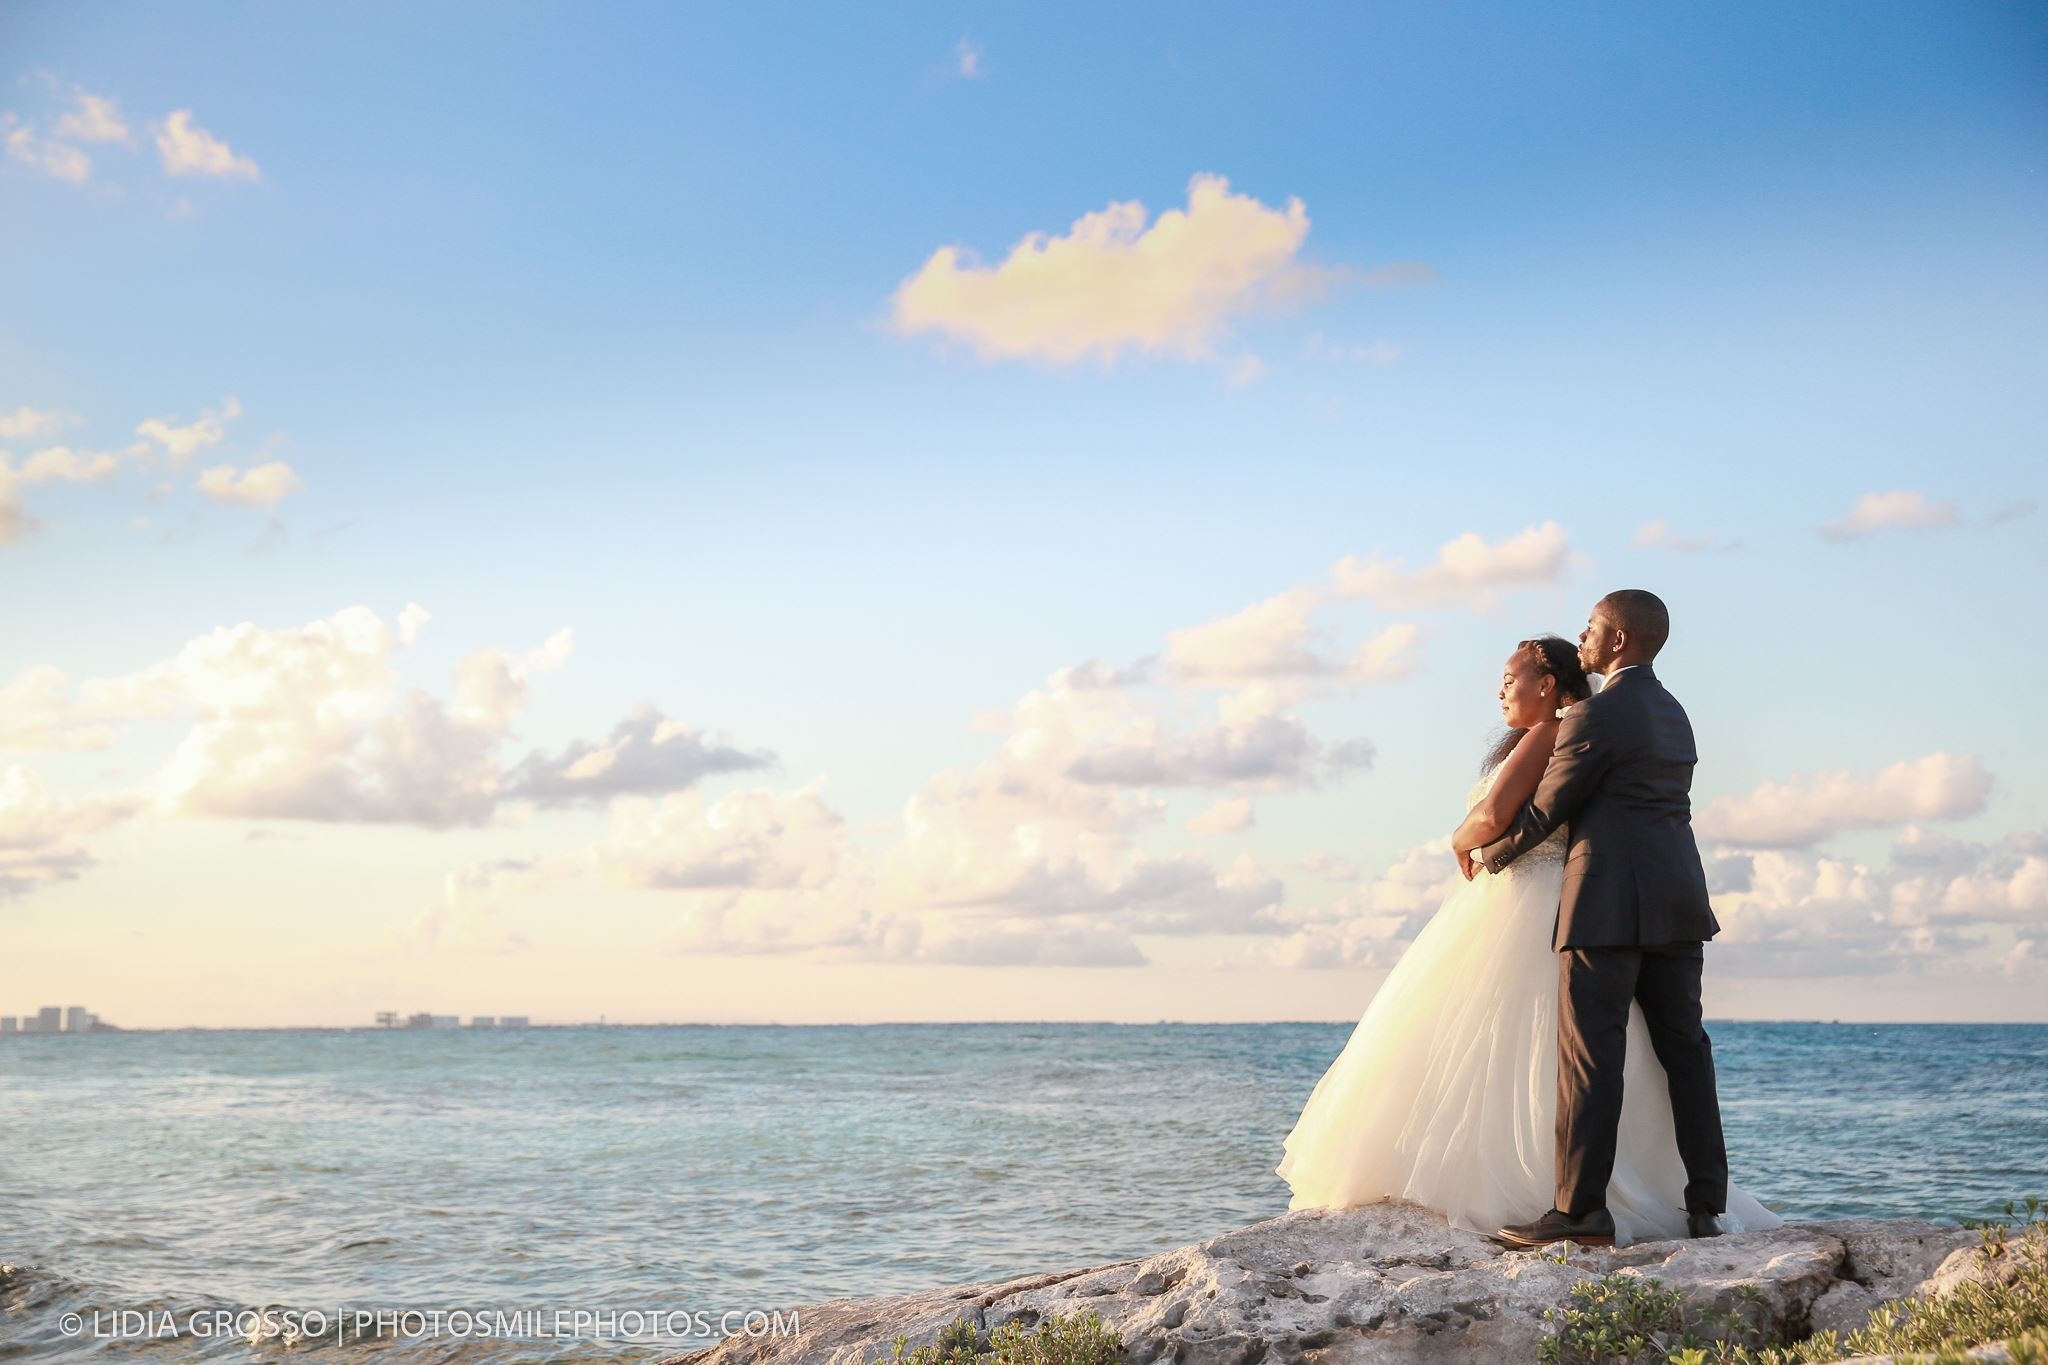 cancun wedding photos, a day after session photos, Hyatt Ziva Cancun wedding photographer, best beach wedding photos, lidia grosso photography